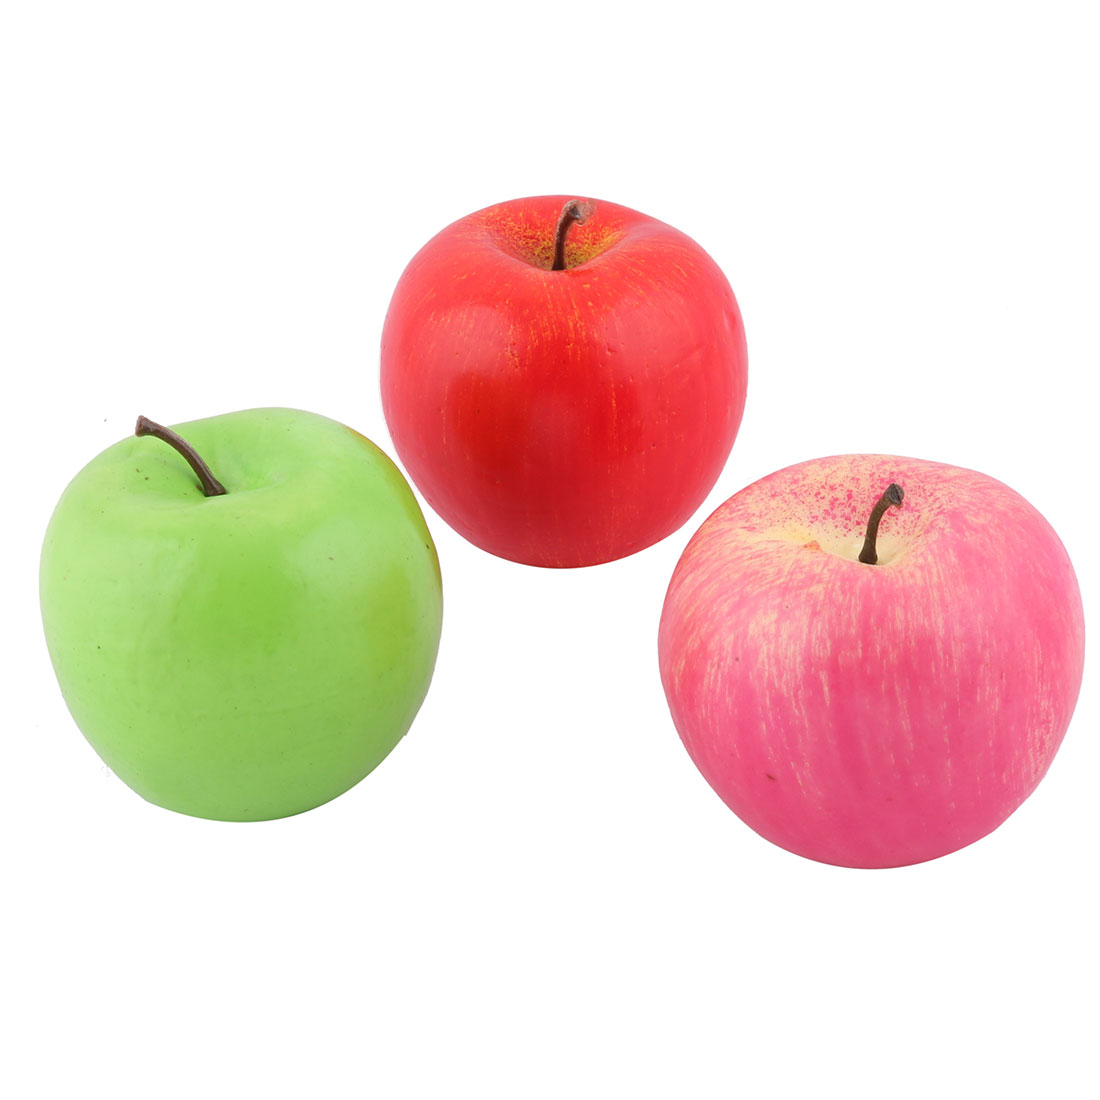 Foam Photo Prop Decor Handmade Artificial Apple Designed Emulation Fruit 3pcs